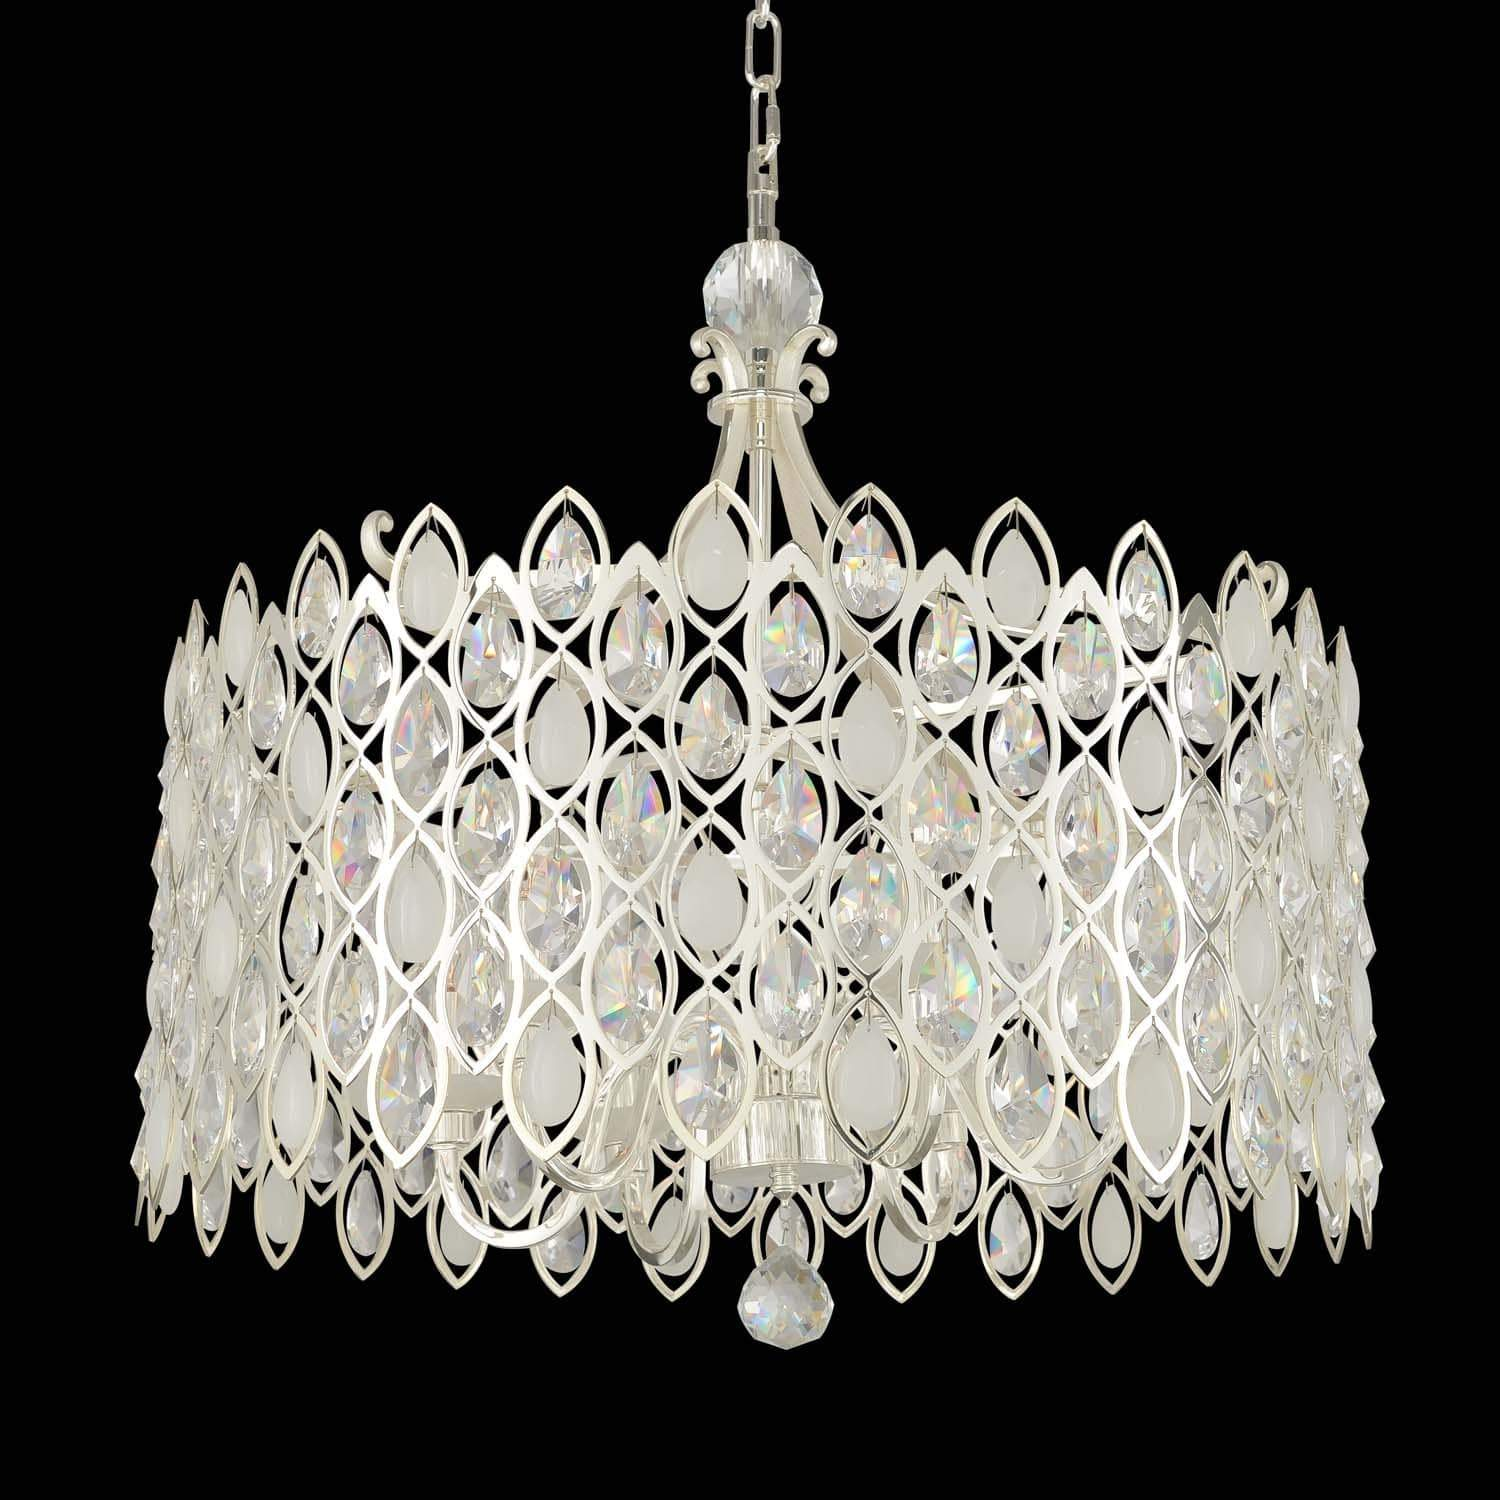 Allegri by Kalco Lighting Pendants Two Tone Silver / Firenze Clear Prive 34 Inch Pendant From Allegri by Kalco Lighting 028754